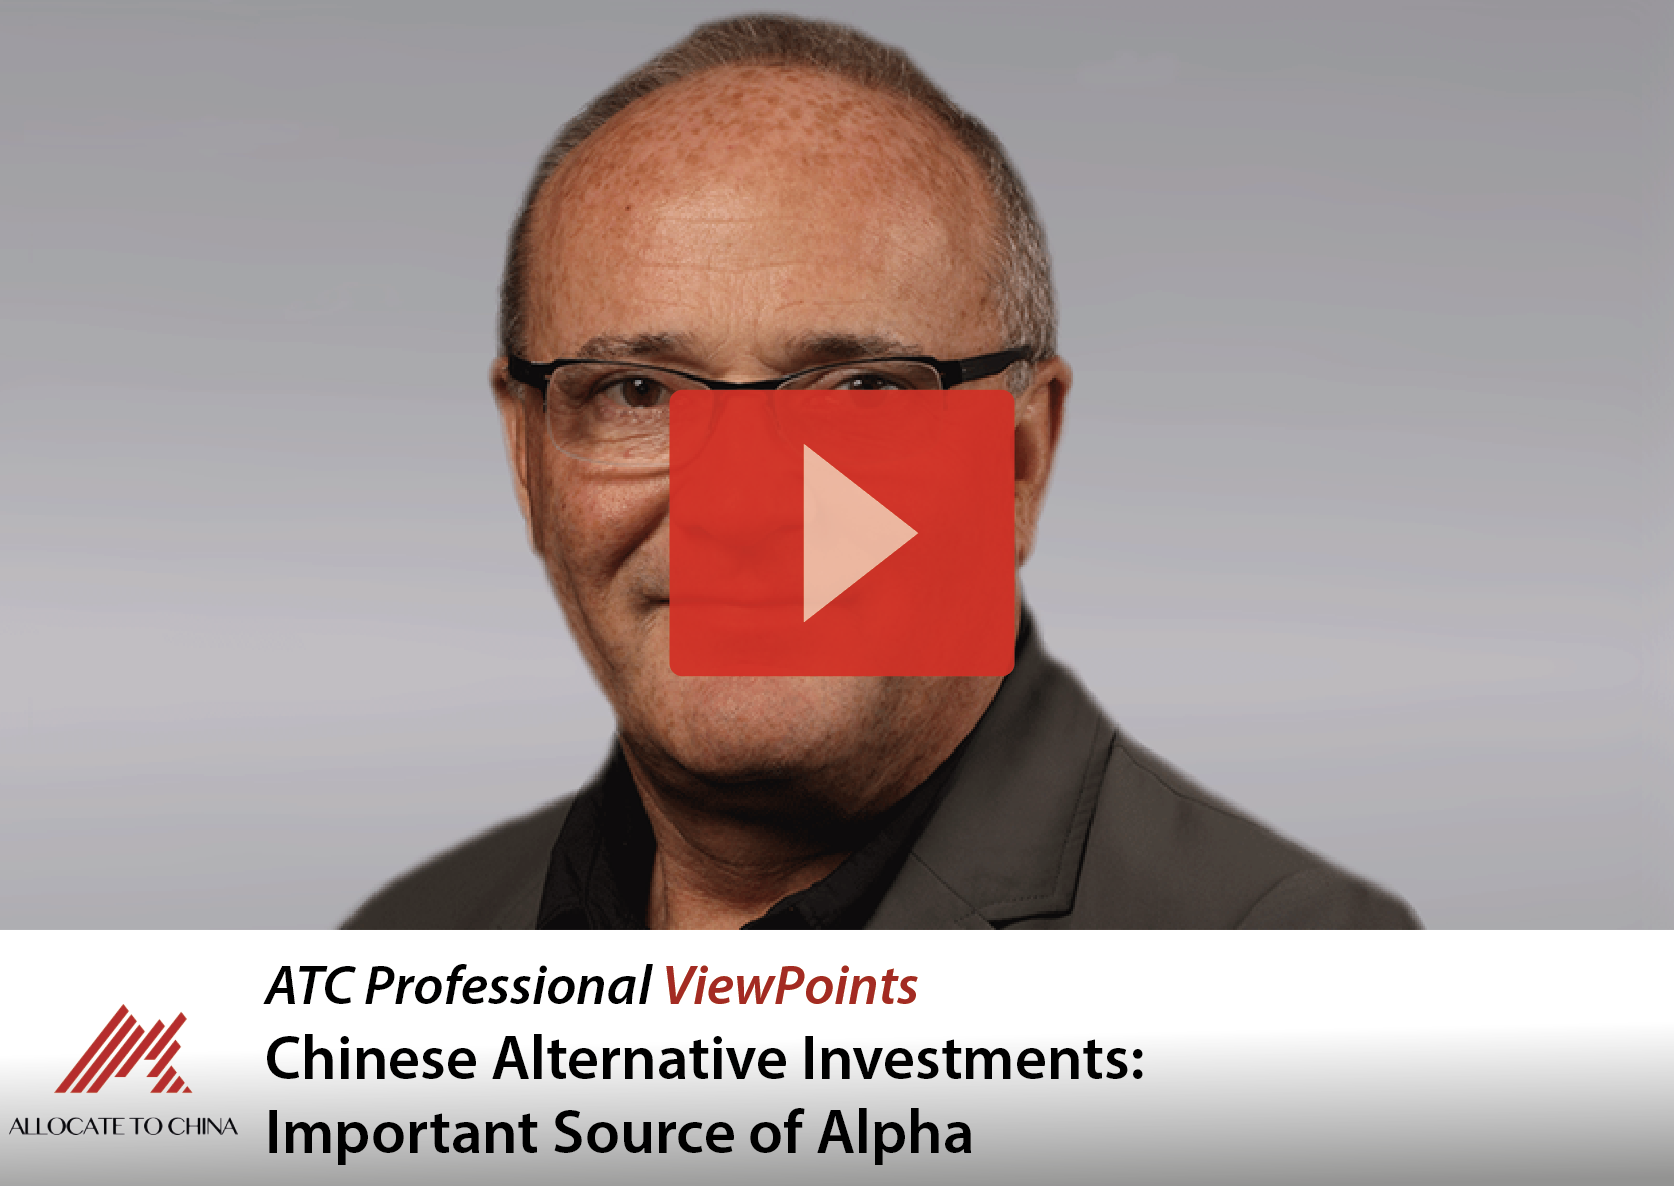 Chinese Alternative Investments: Important Source of Alpha